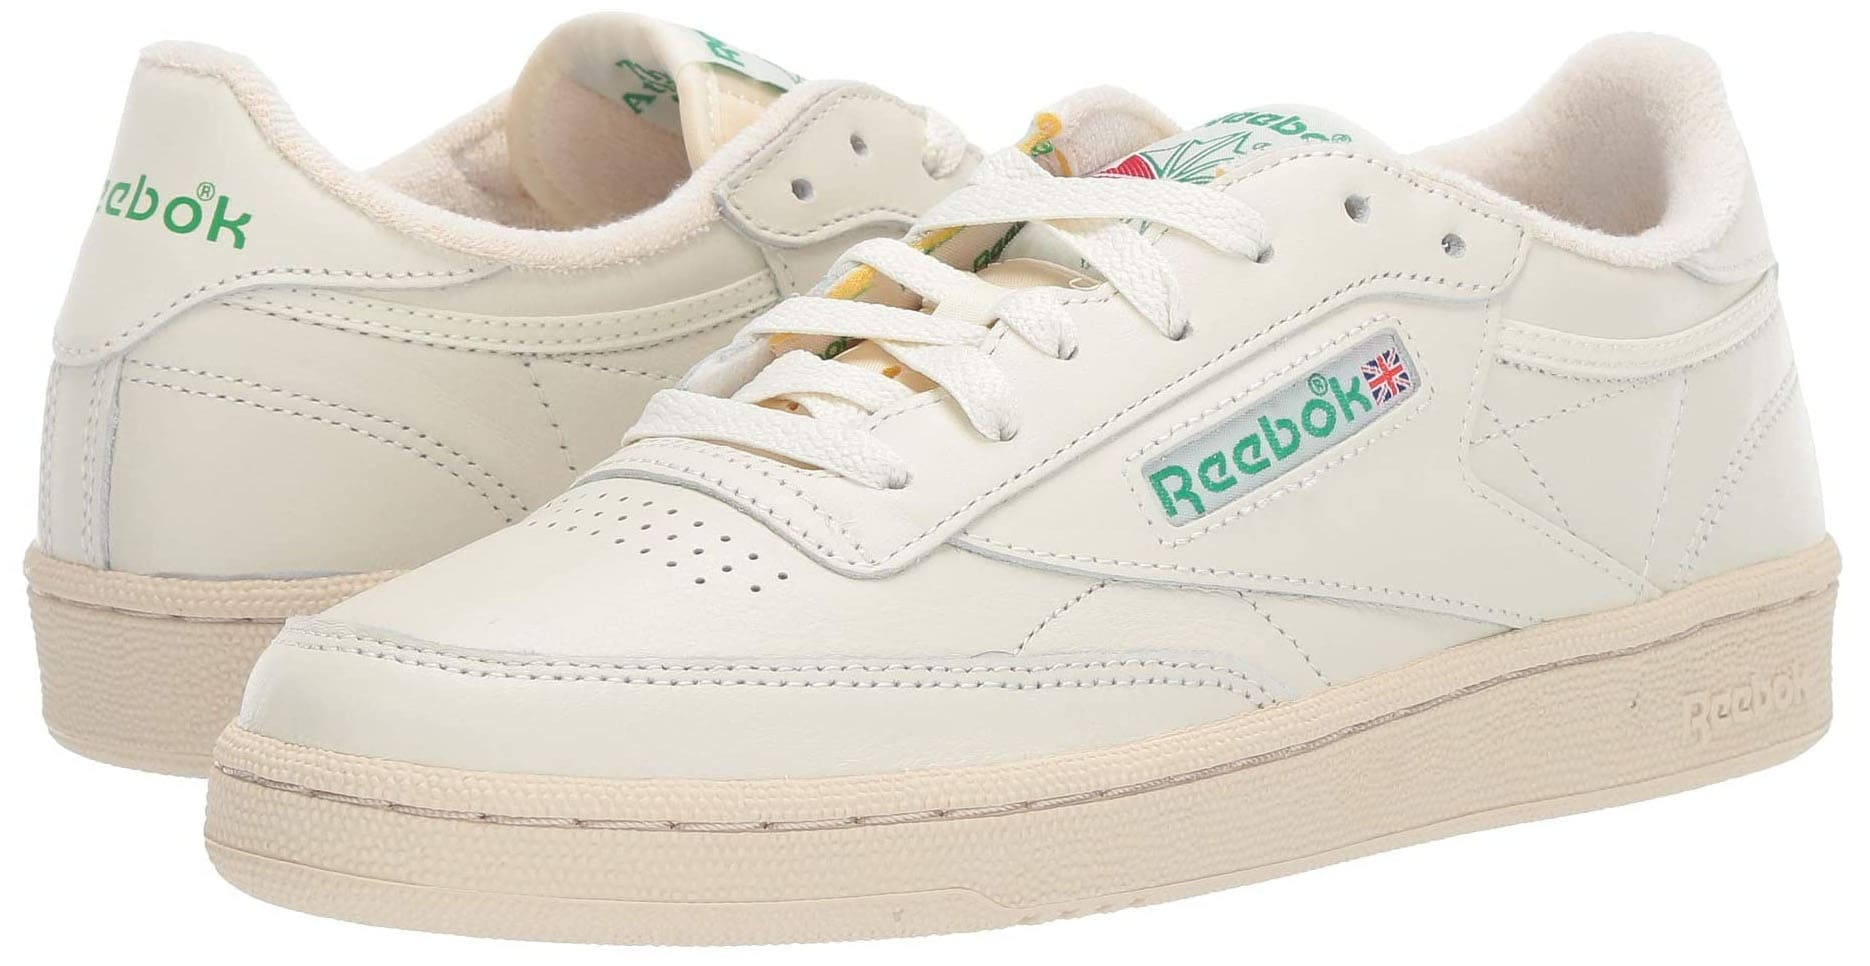 A classic pair of white leather shoes with vintage-effect look